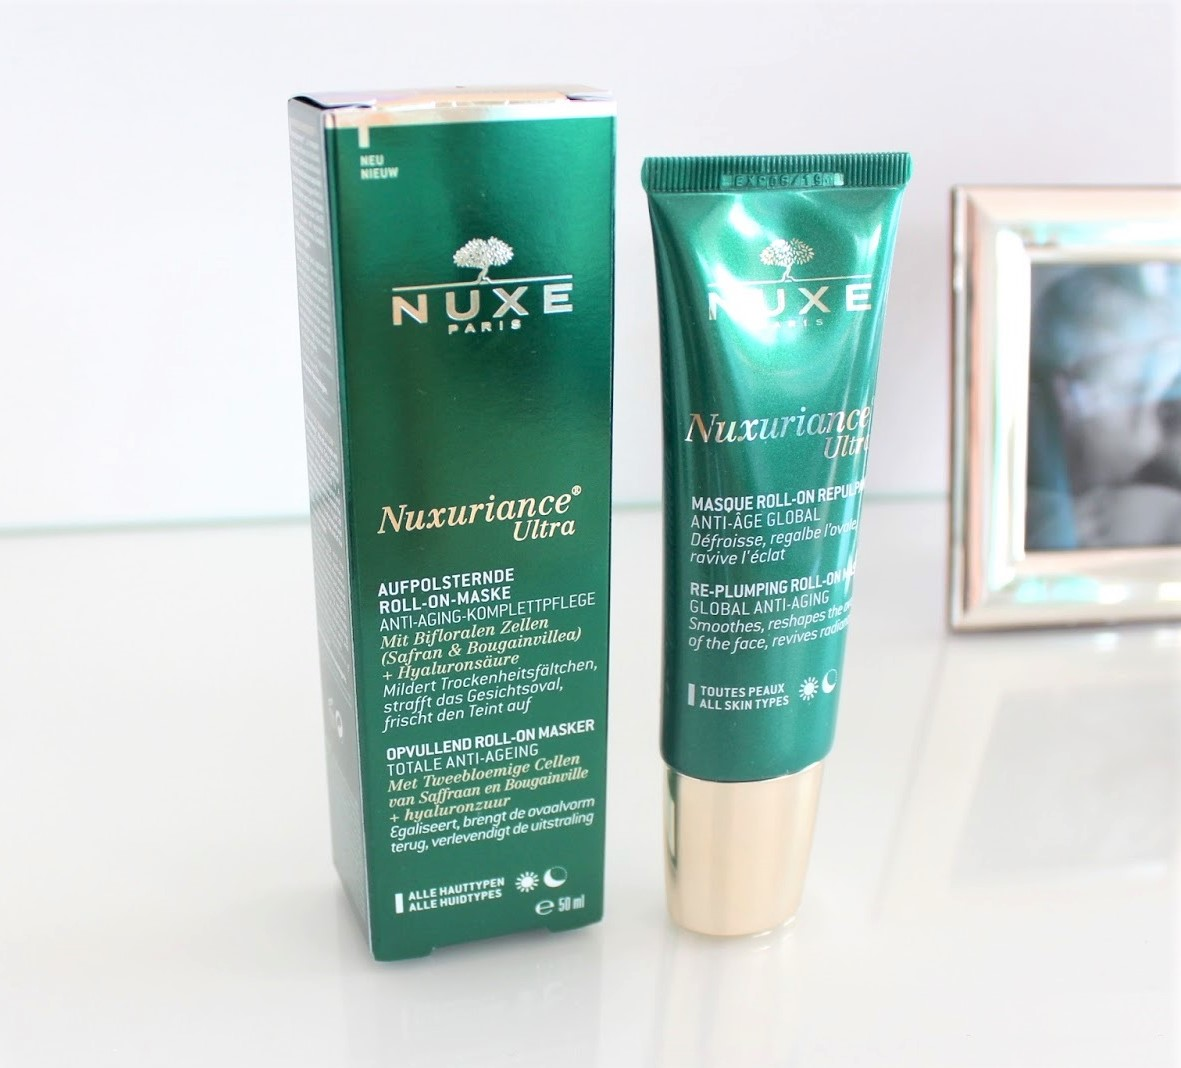 mat-na-kem-nuxe-skincare-anti-aging-roll-on-mask-nuxuriance-ultra-02